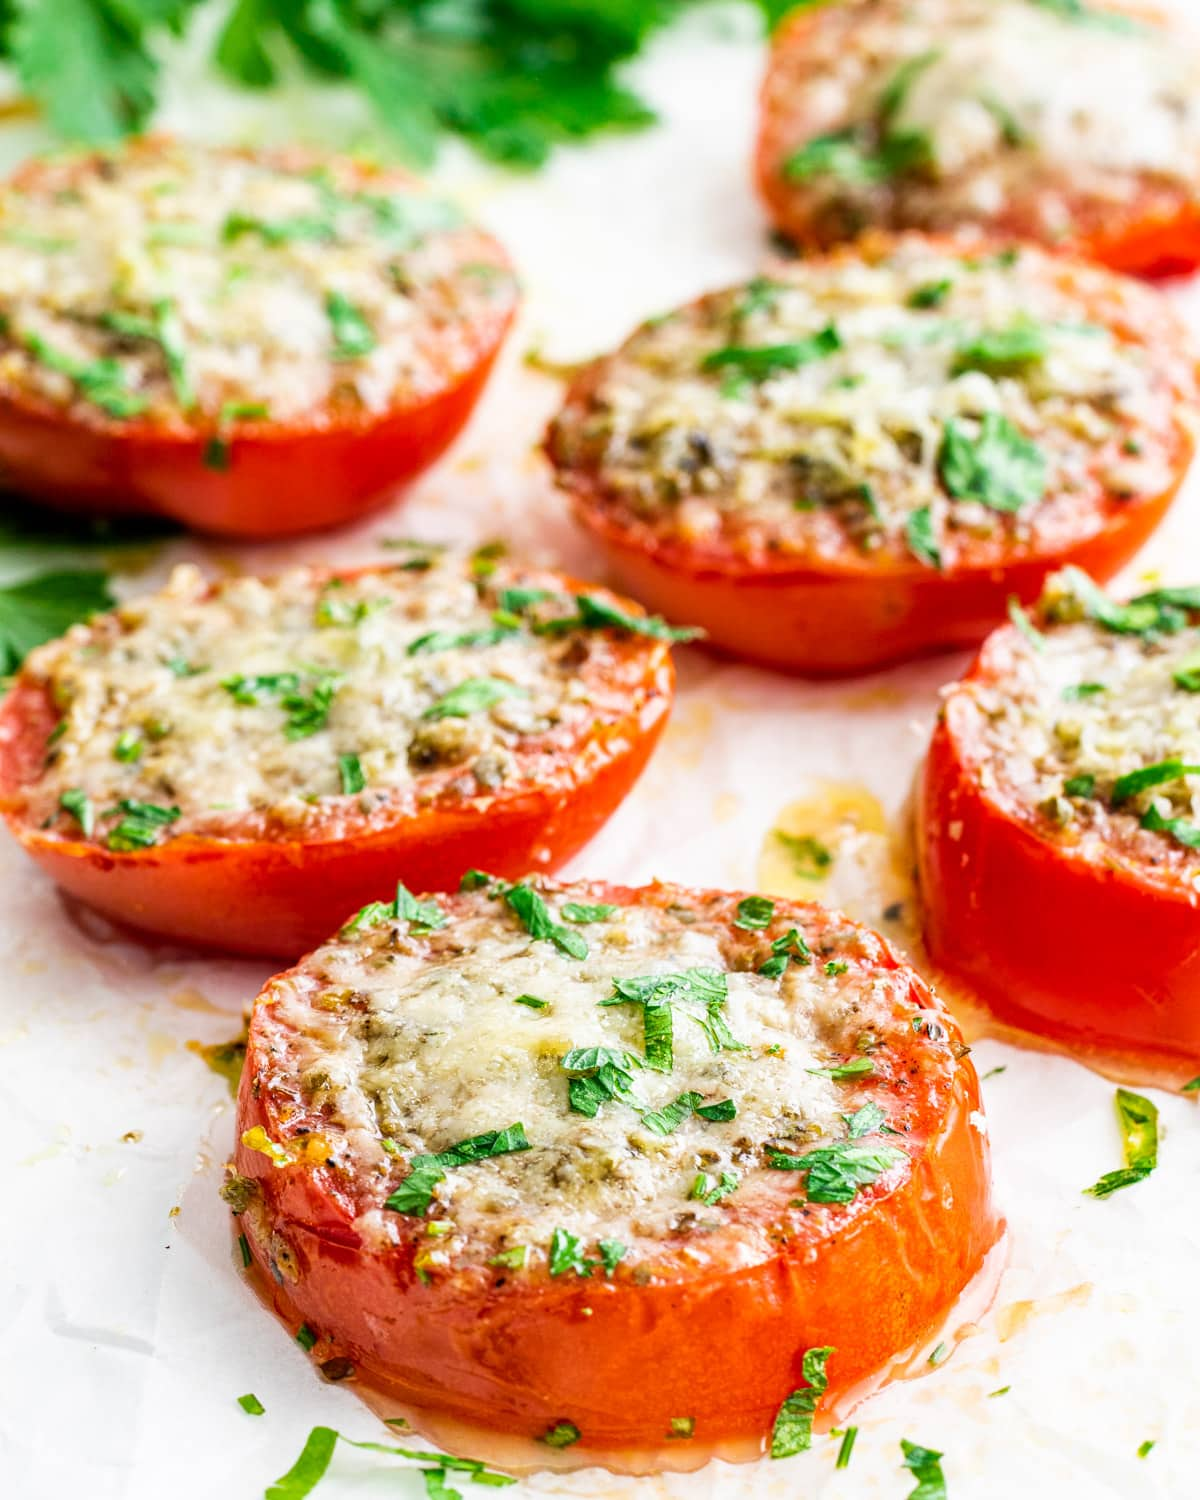 side view shot of 6 slices of baked parmesan tomatoes garnished with parsley